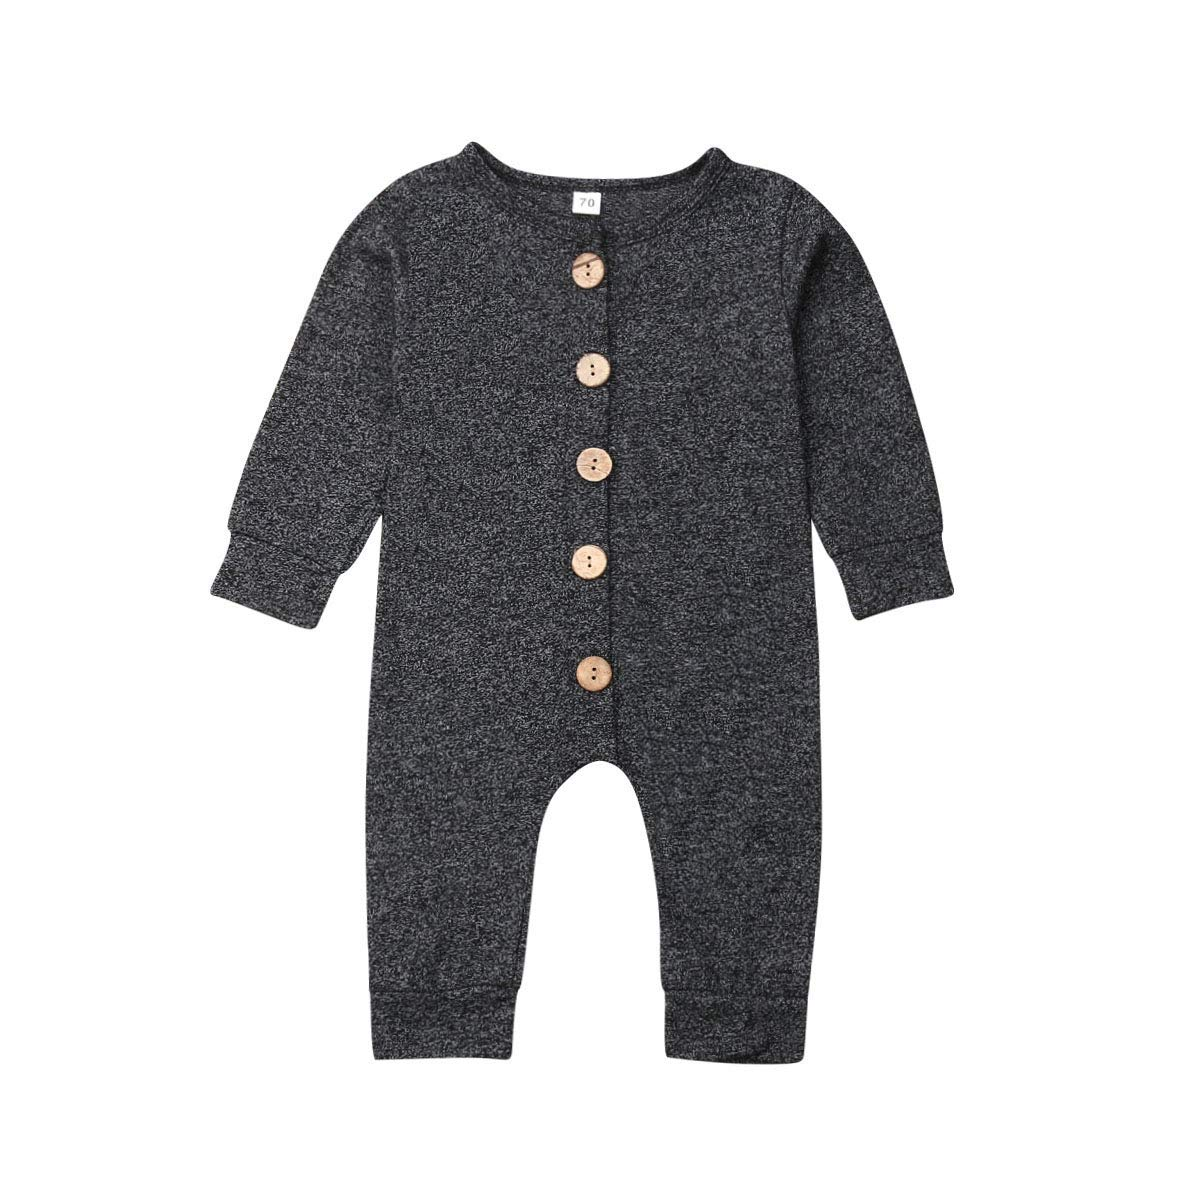 Honganda Infant Baby Boy Girl Romper Jumpsuit with Buttons Playsuit Outfit Spring Summer Clothes